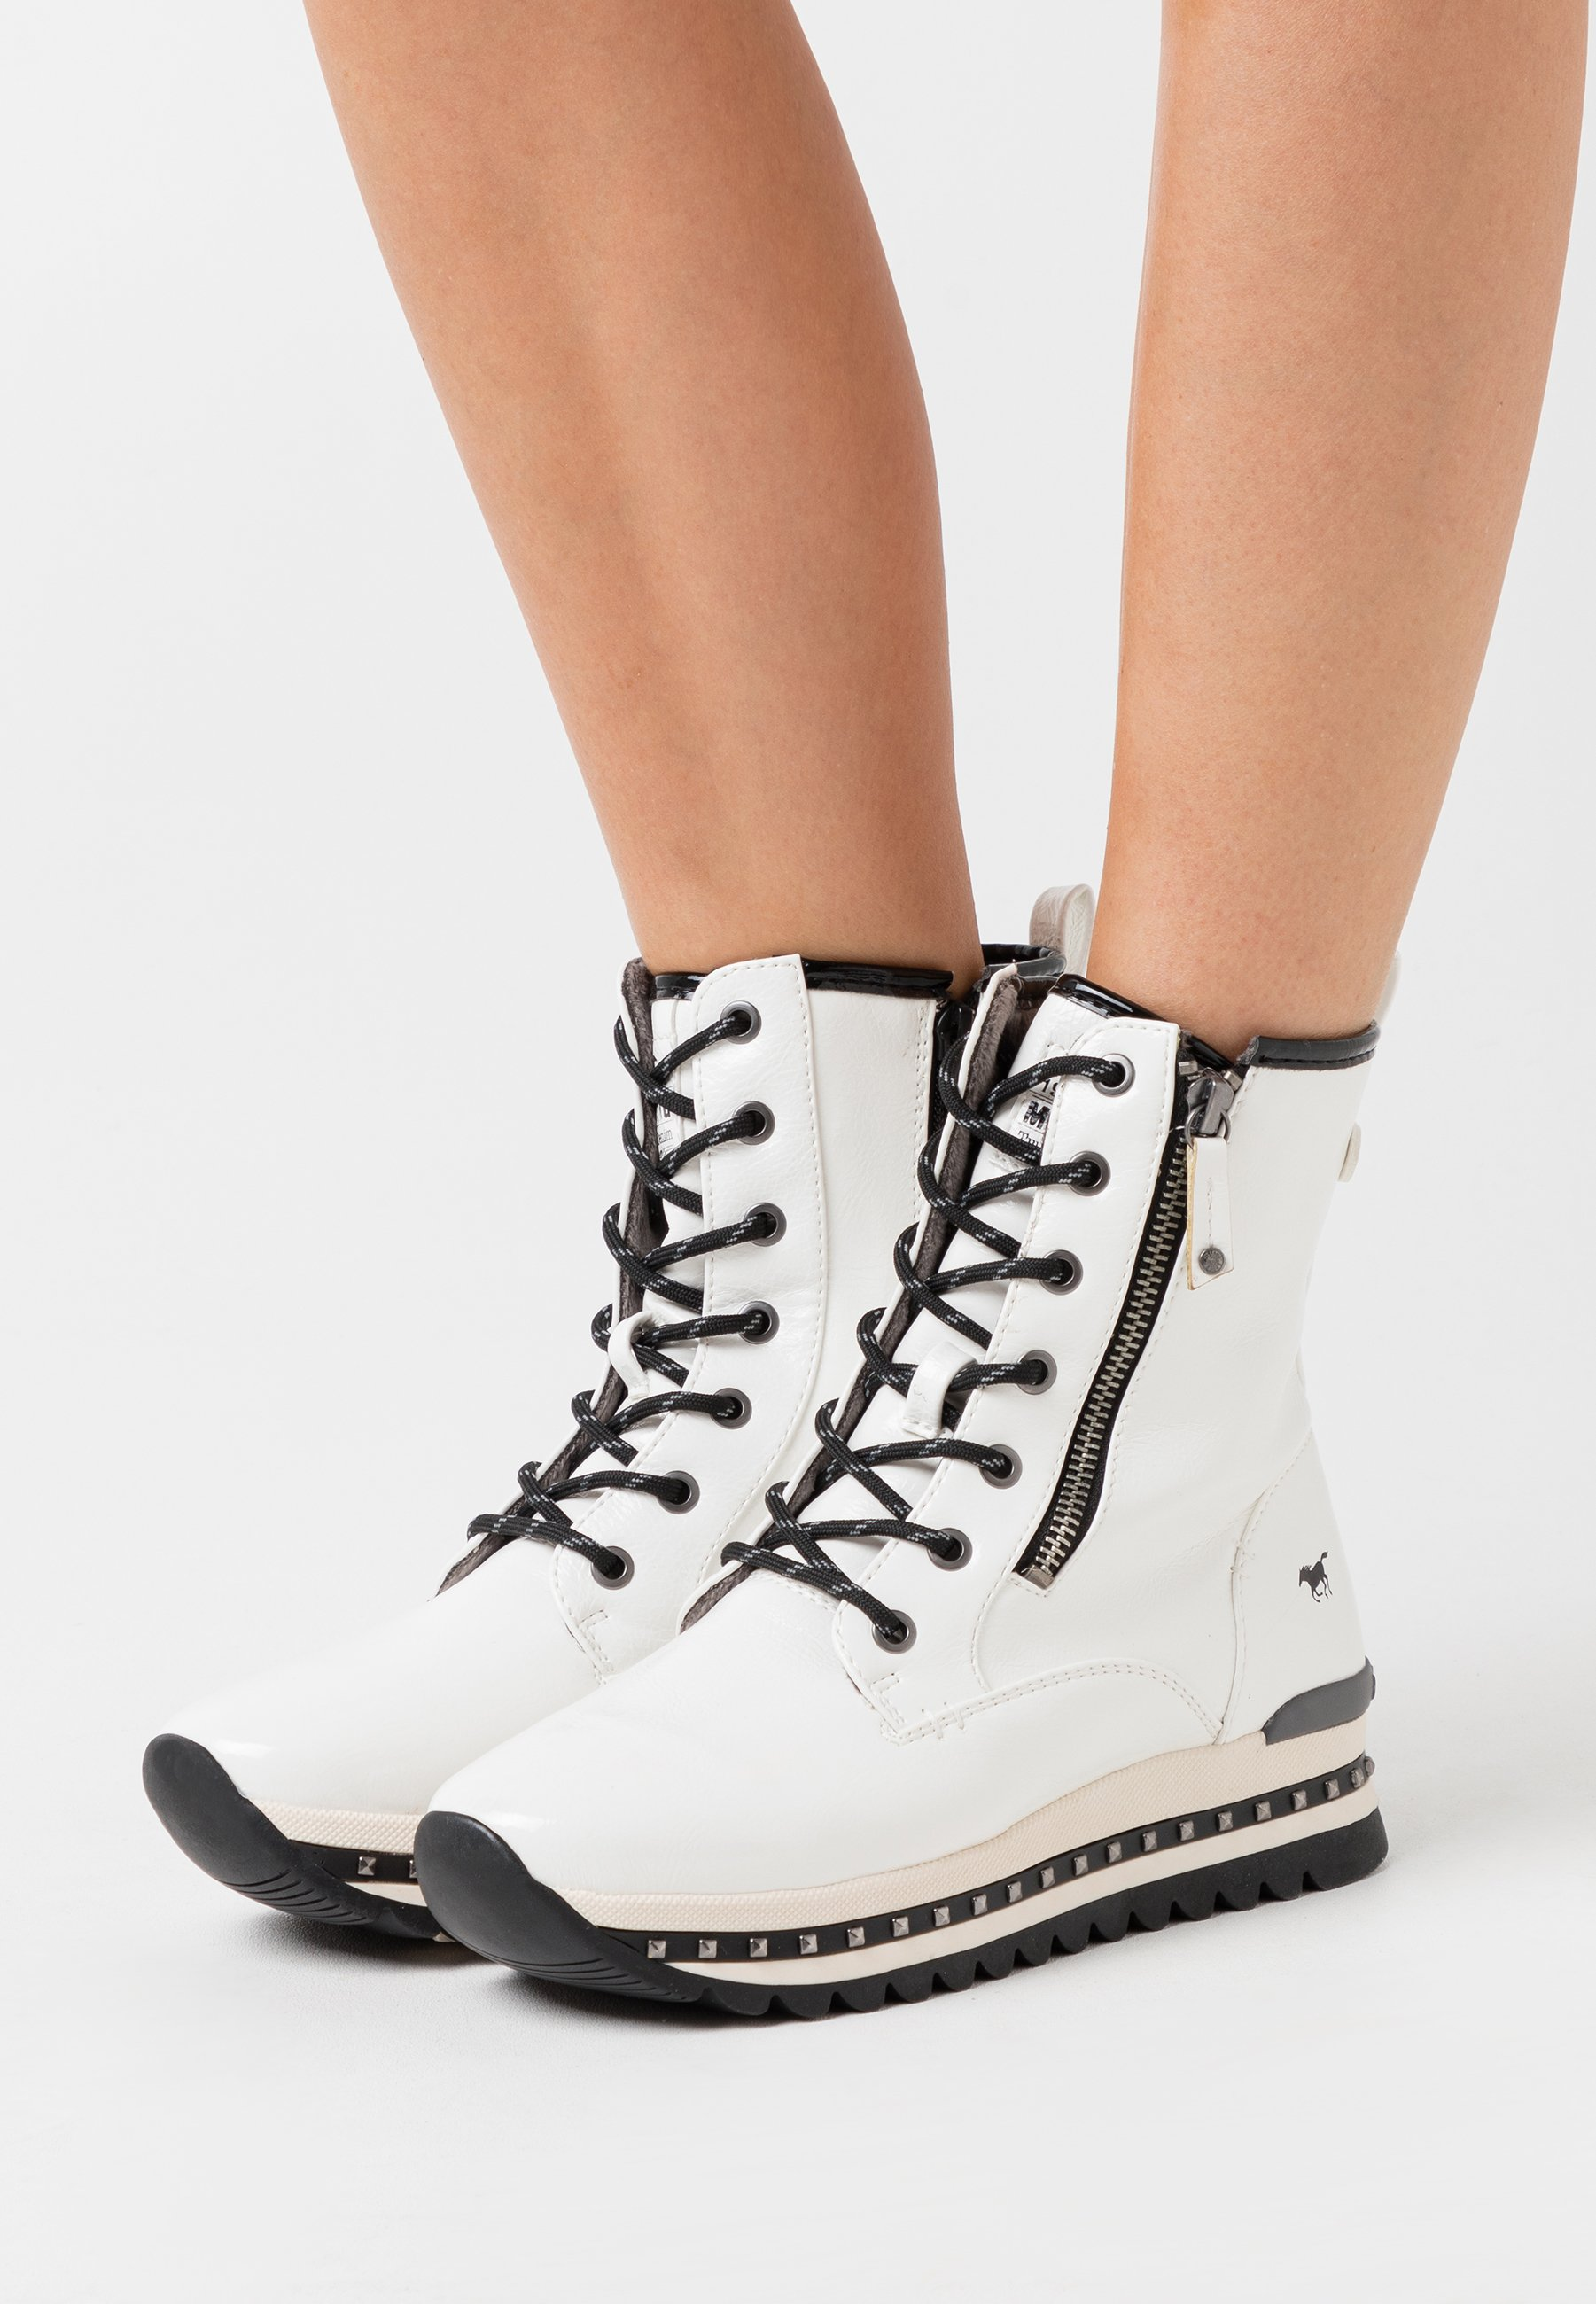 Explore Latest Women's Shoes Mustang Platform ankle boots weiß tuL0CRXFN 4zLjEGfEP